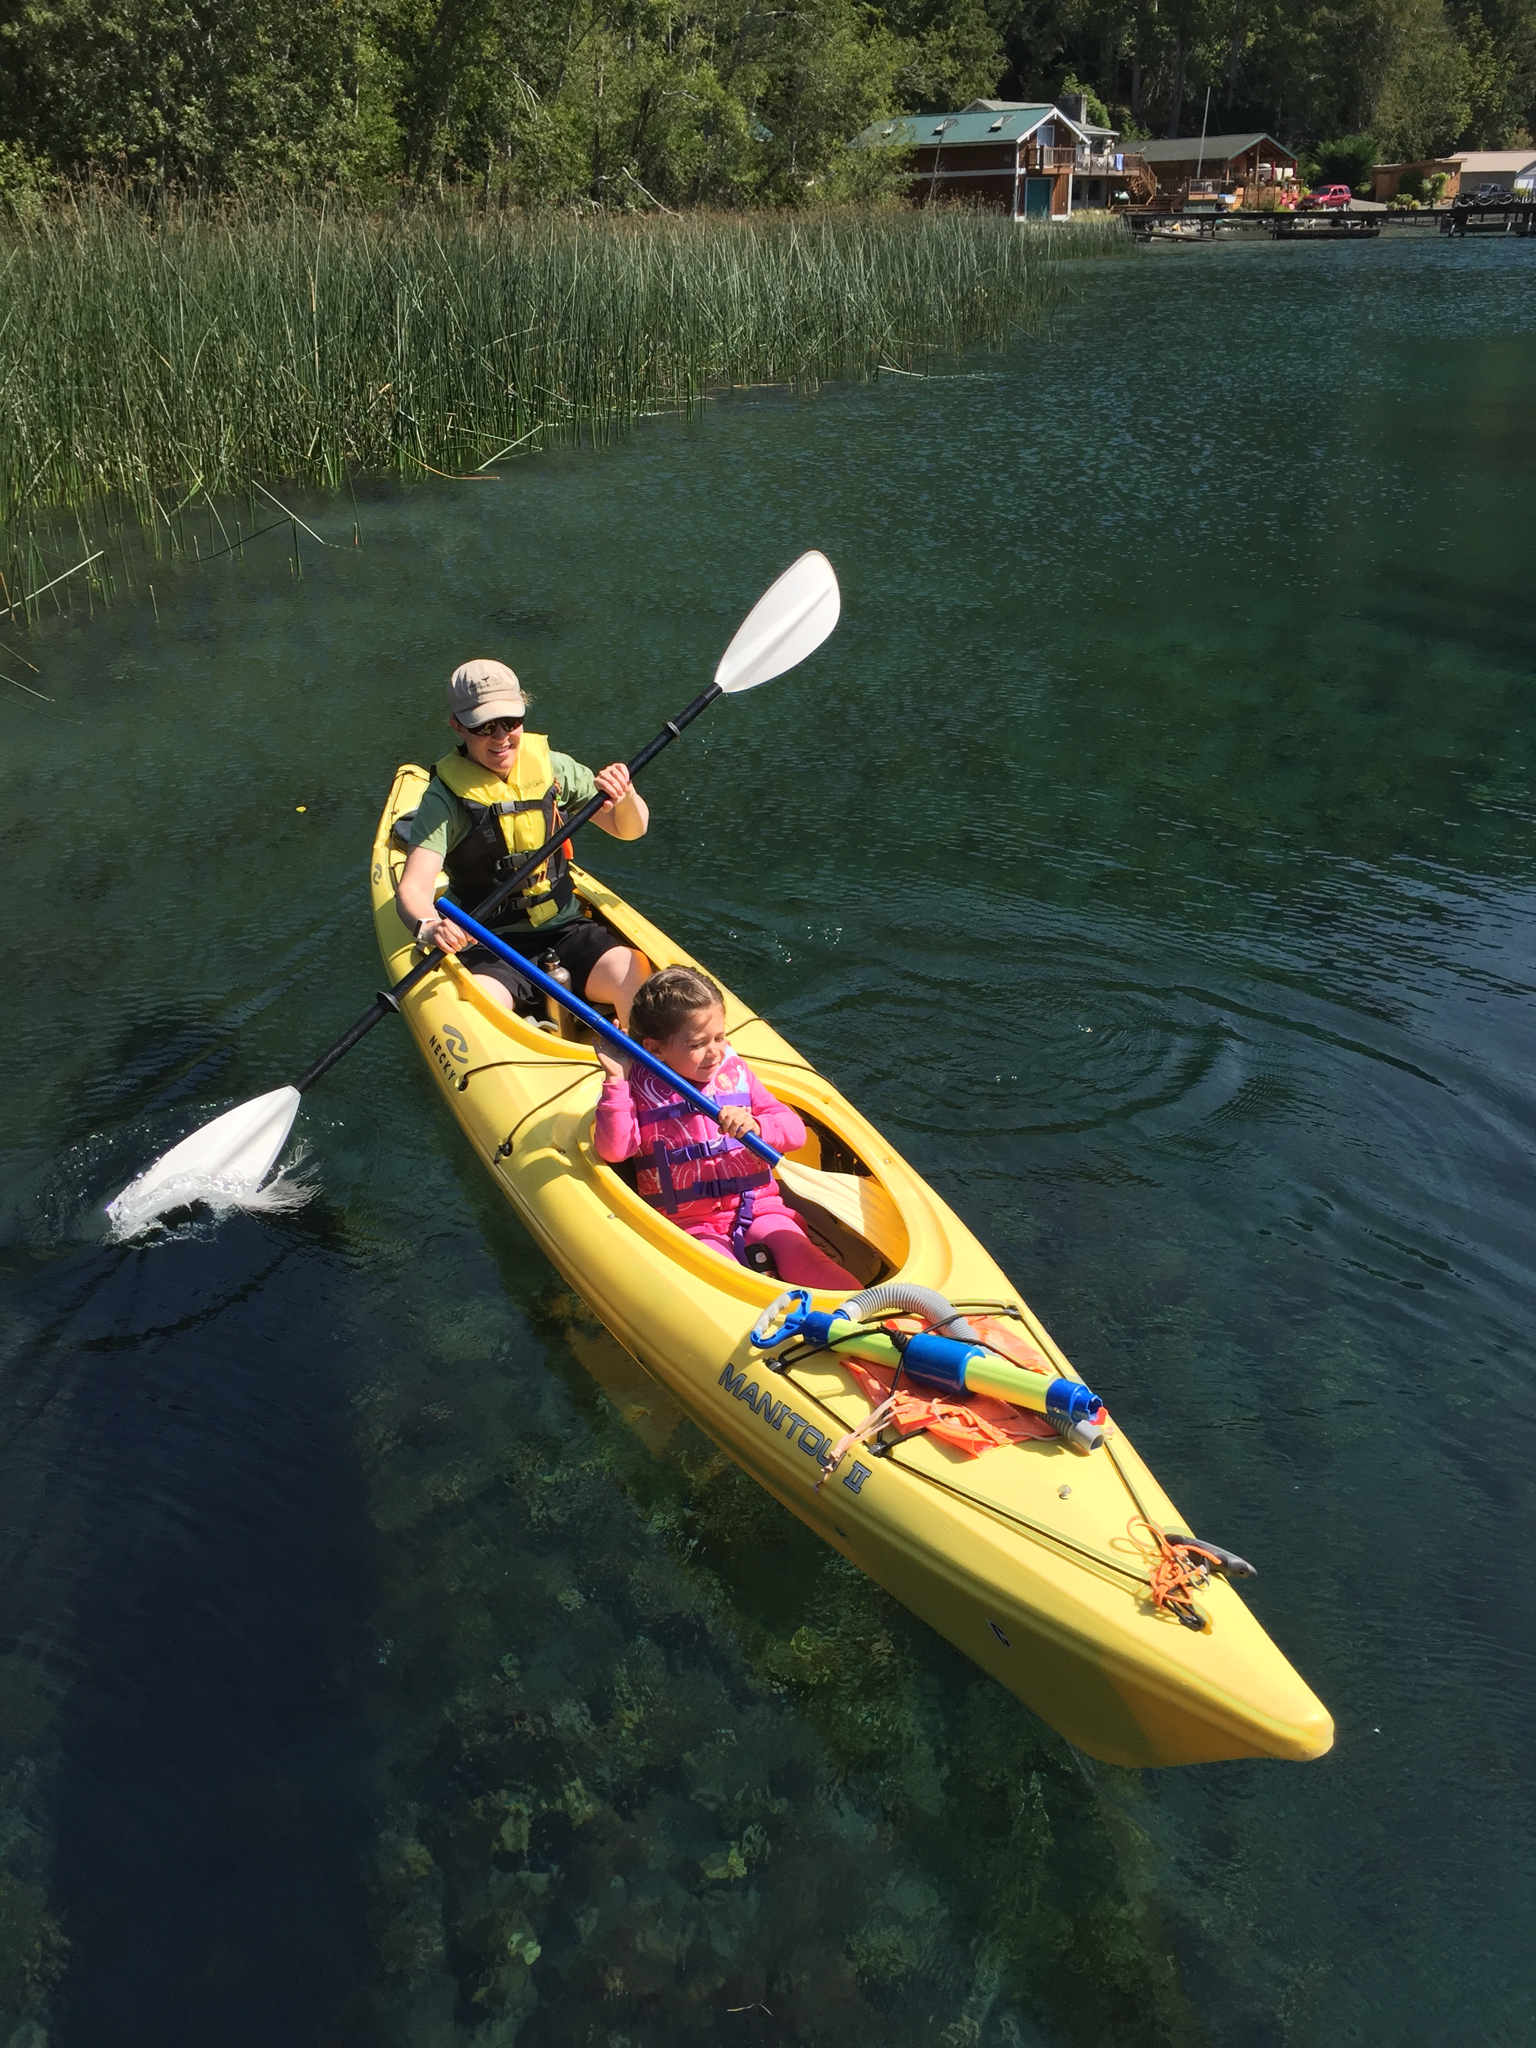 Kayaking in Swequim 3.jpg